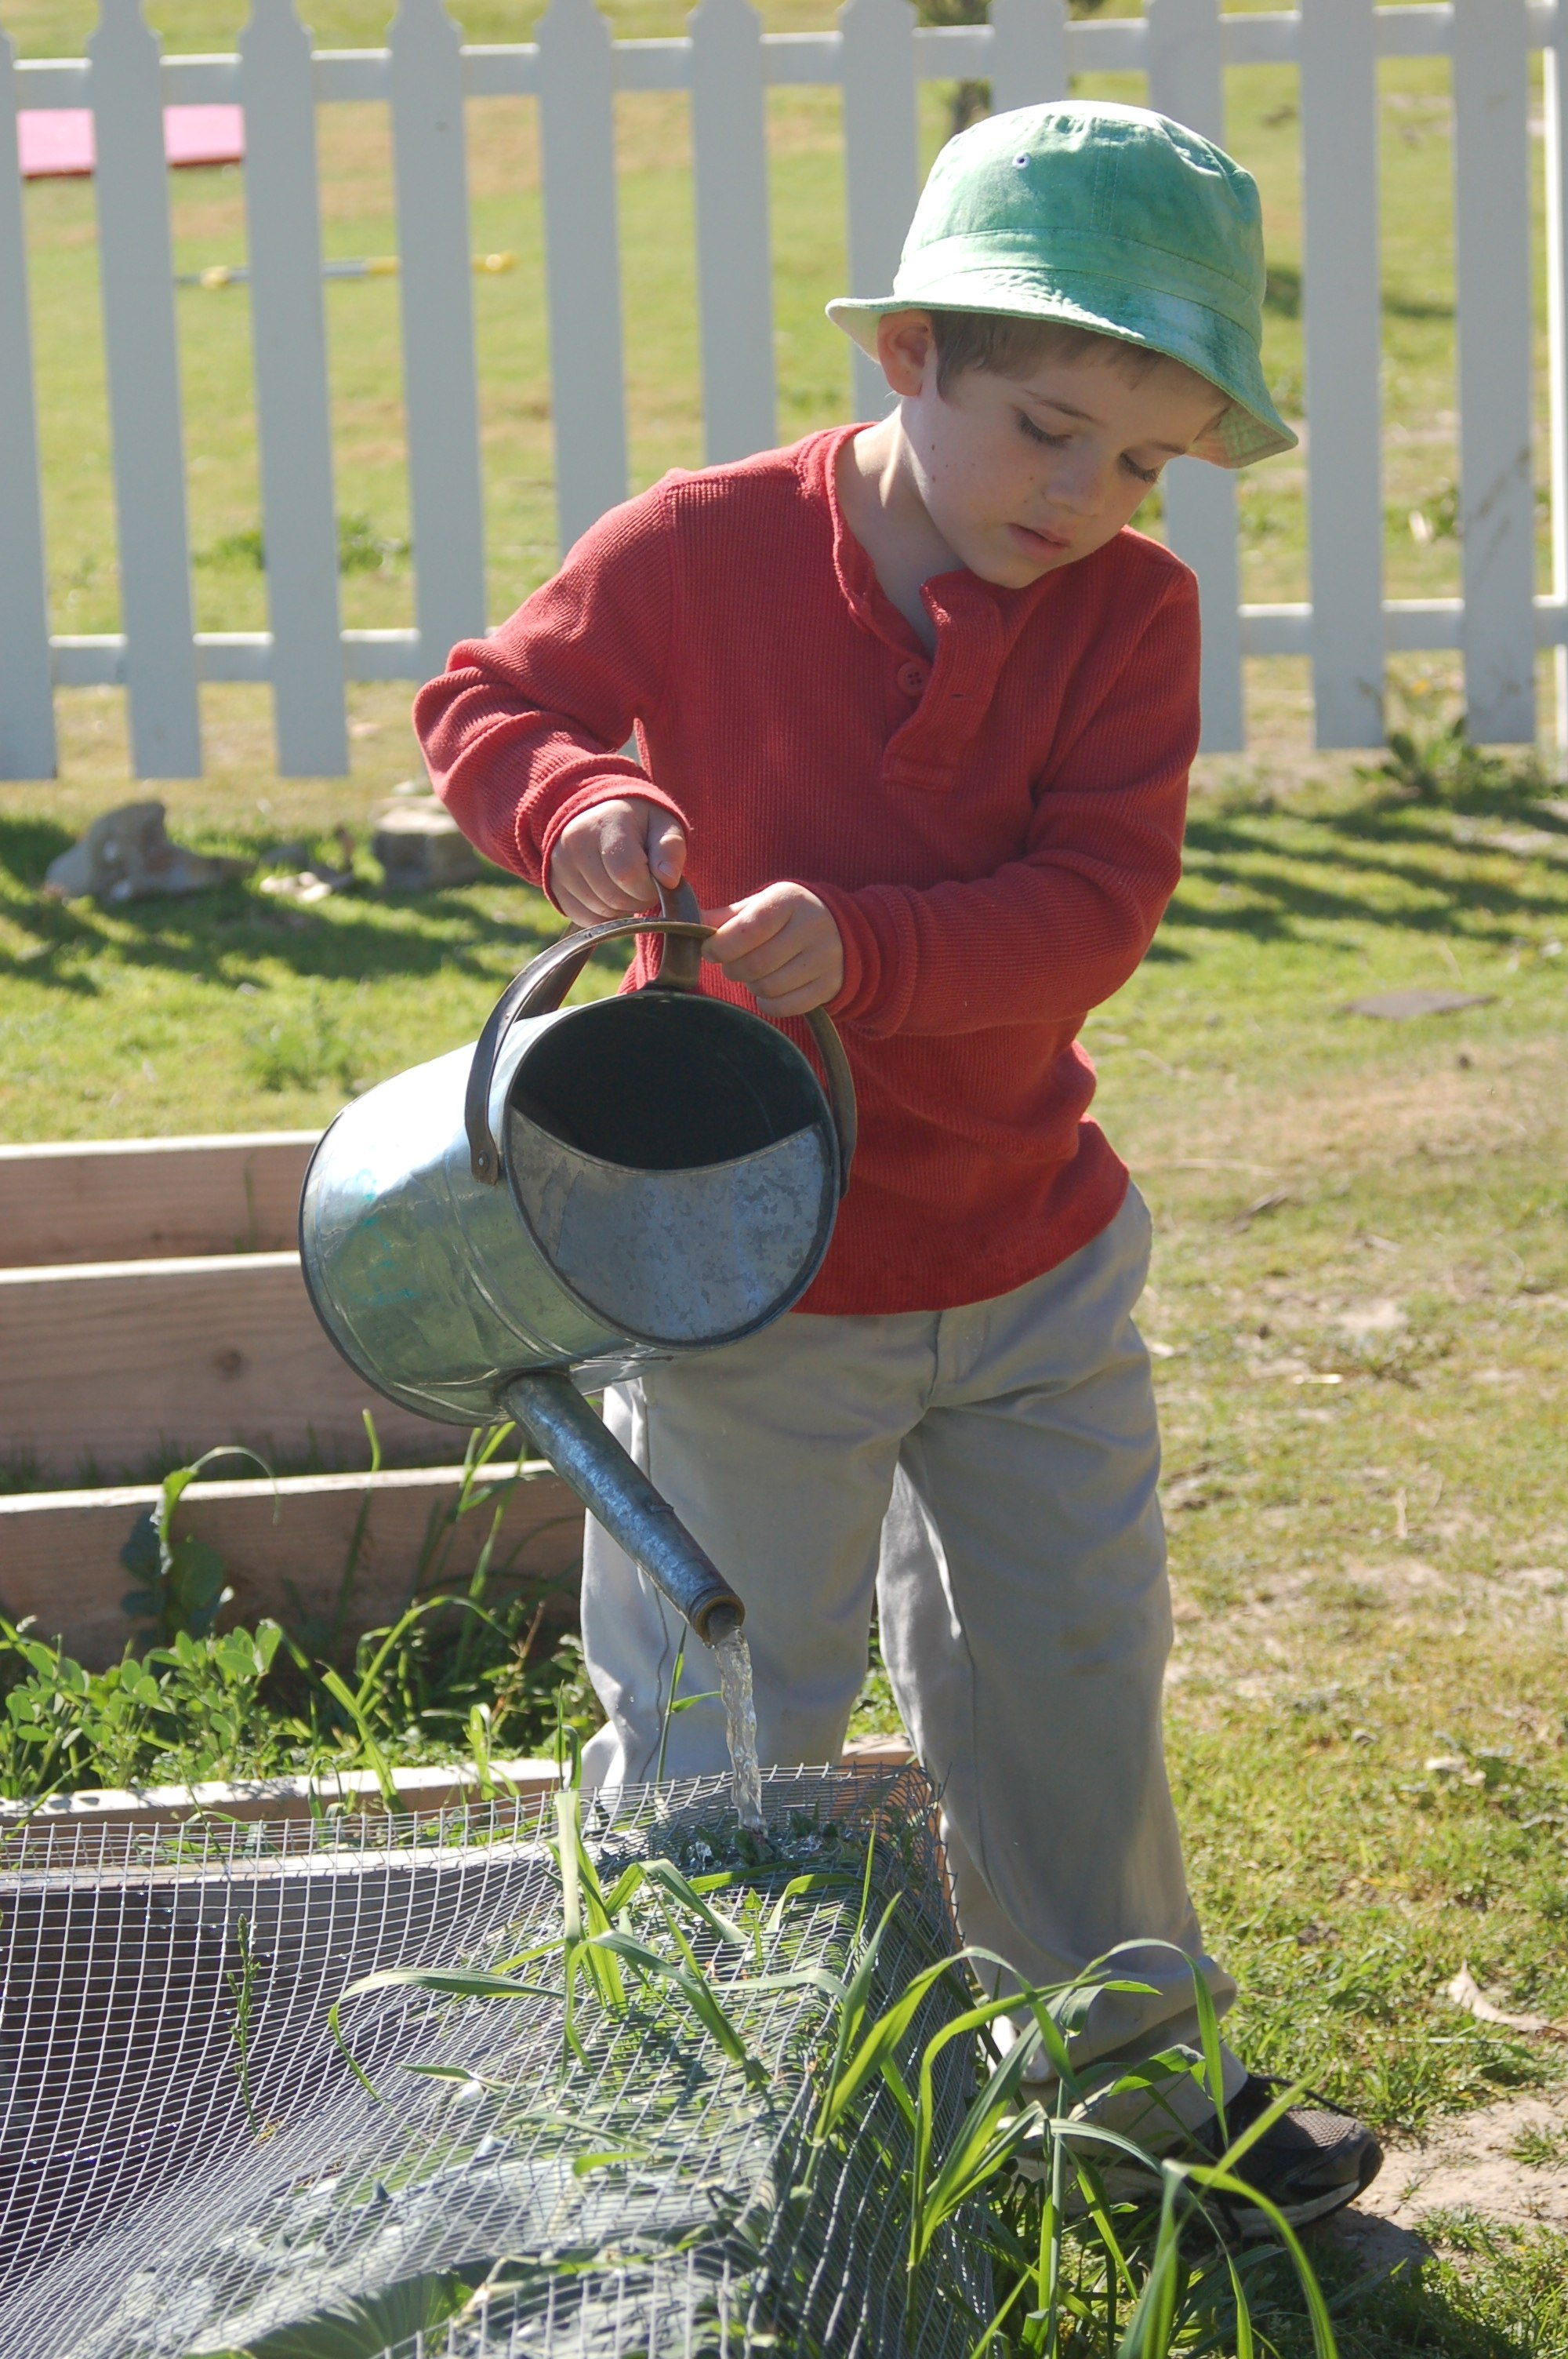 Watering the Kindy garden